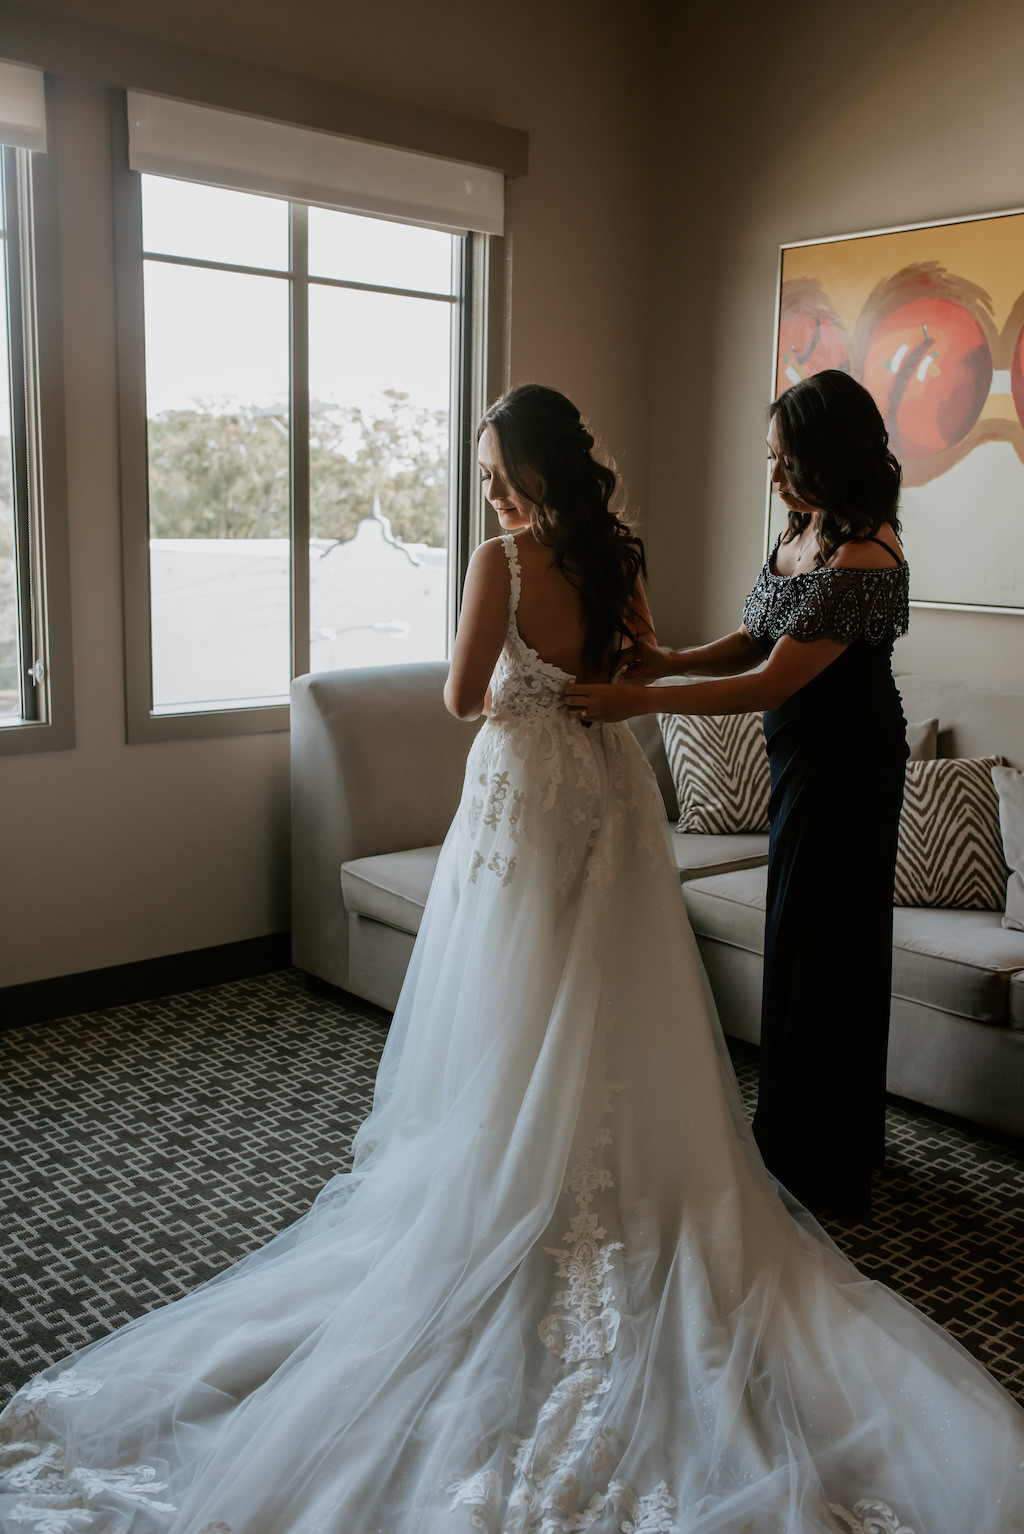 Florida Bride and Mother Getting Ready Photo, Open Back White Wedding Dress